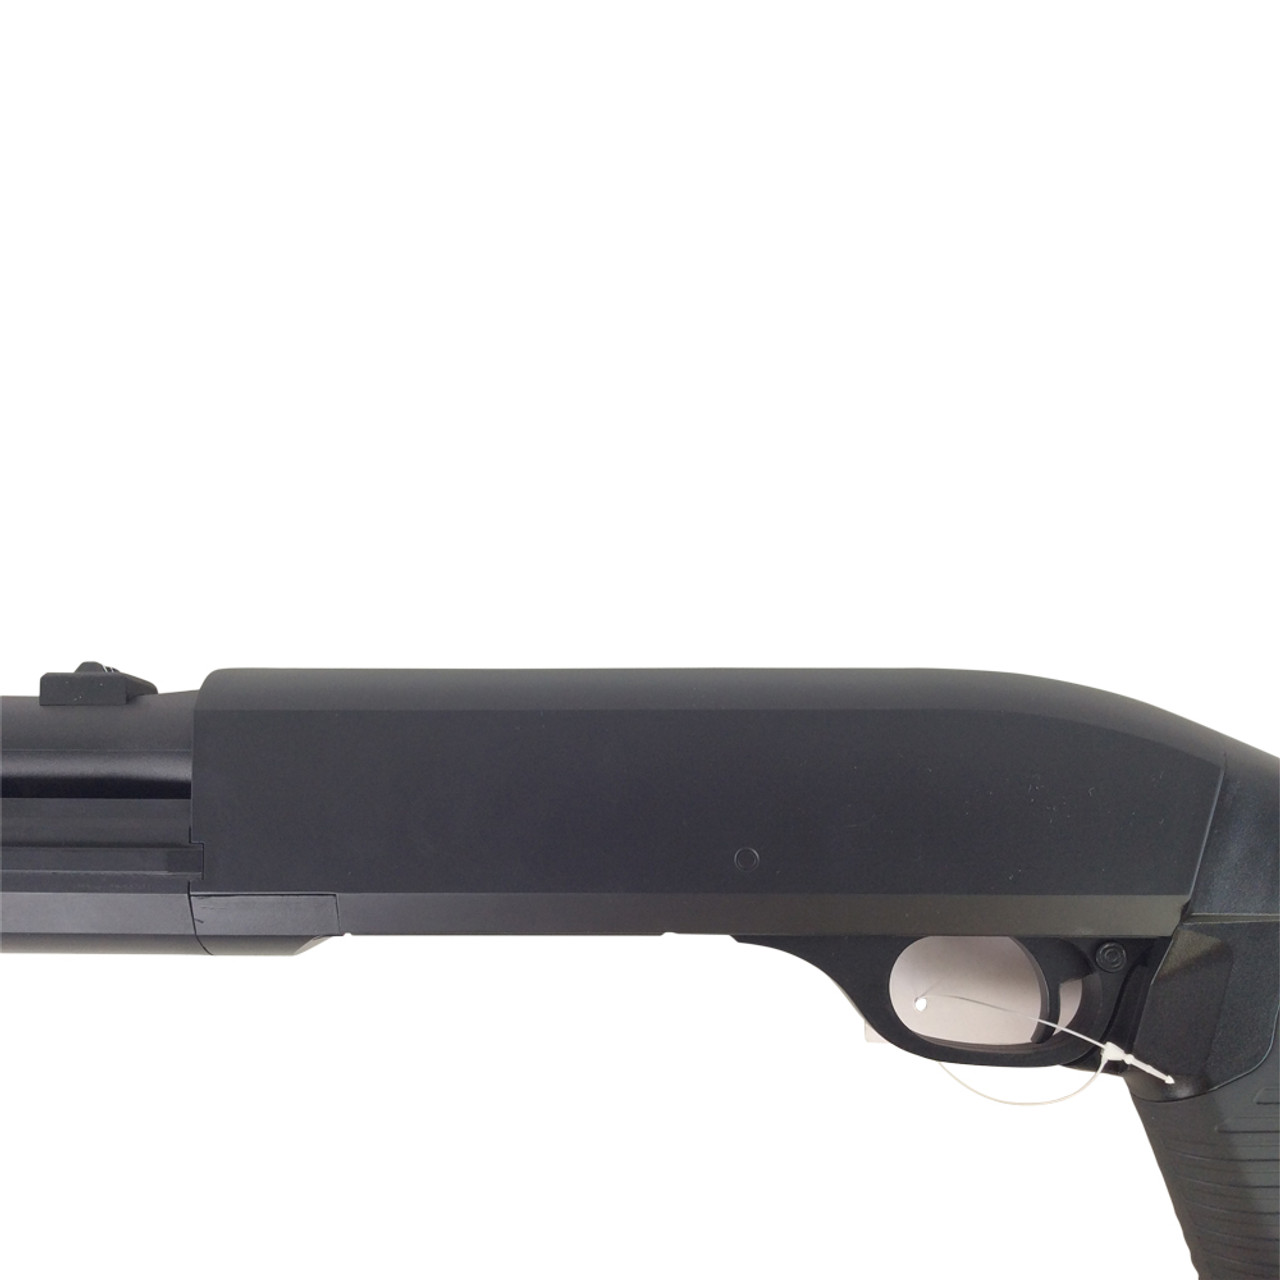 DOUBLE EAGLE M56A TRI-SHOT SPRING SHOTGUN PISTOL GRIP FIXED STOCK